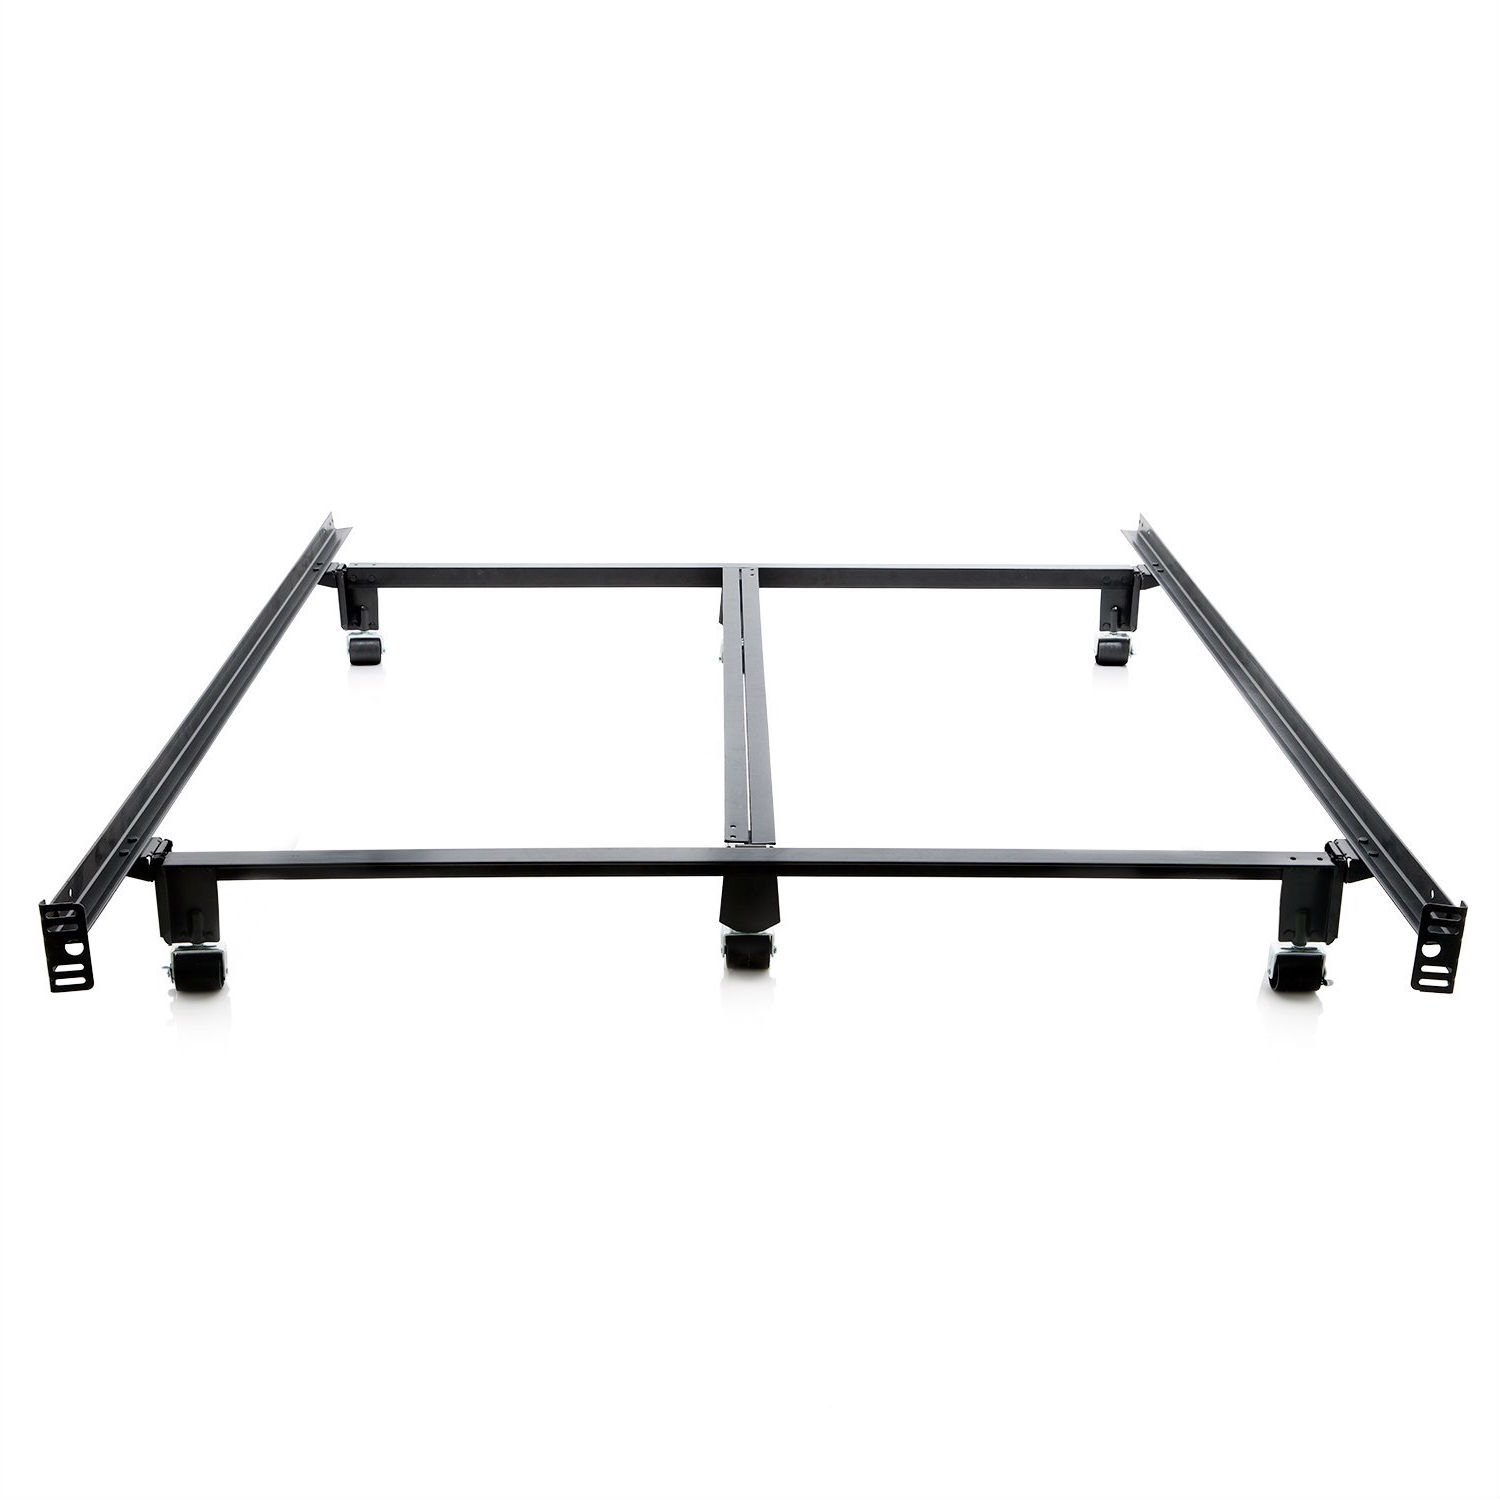 Good King Size Heavy Duty Metal Bed Frame With Locking Rug Roller Casters Wheels